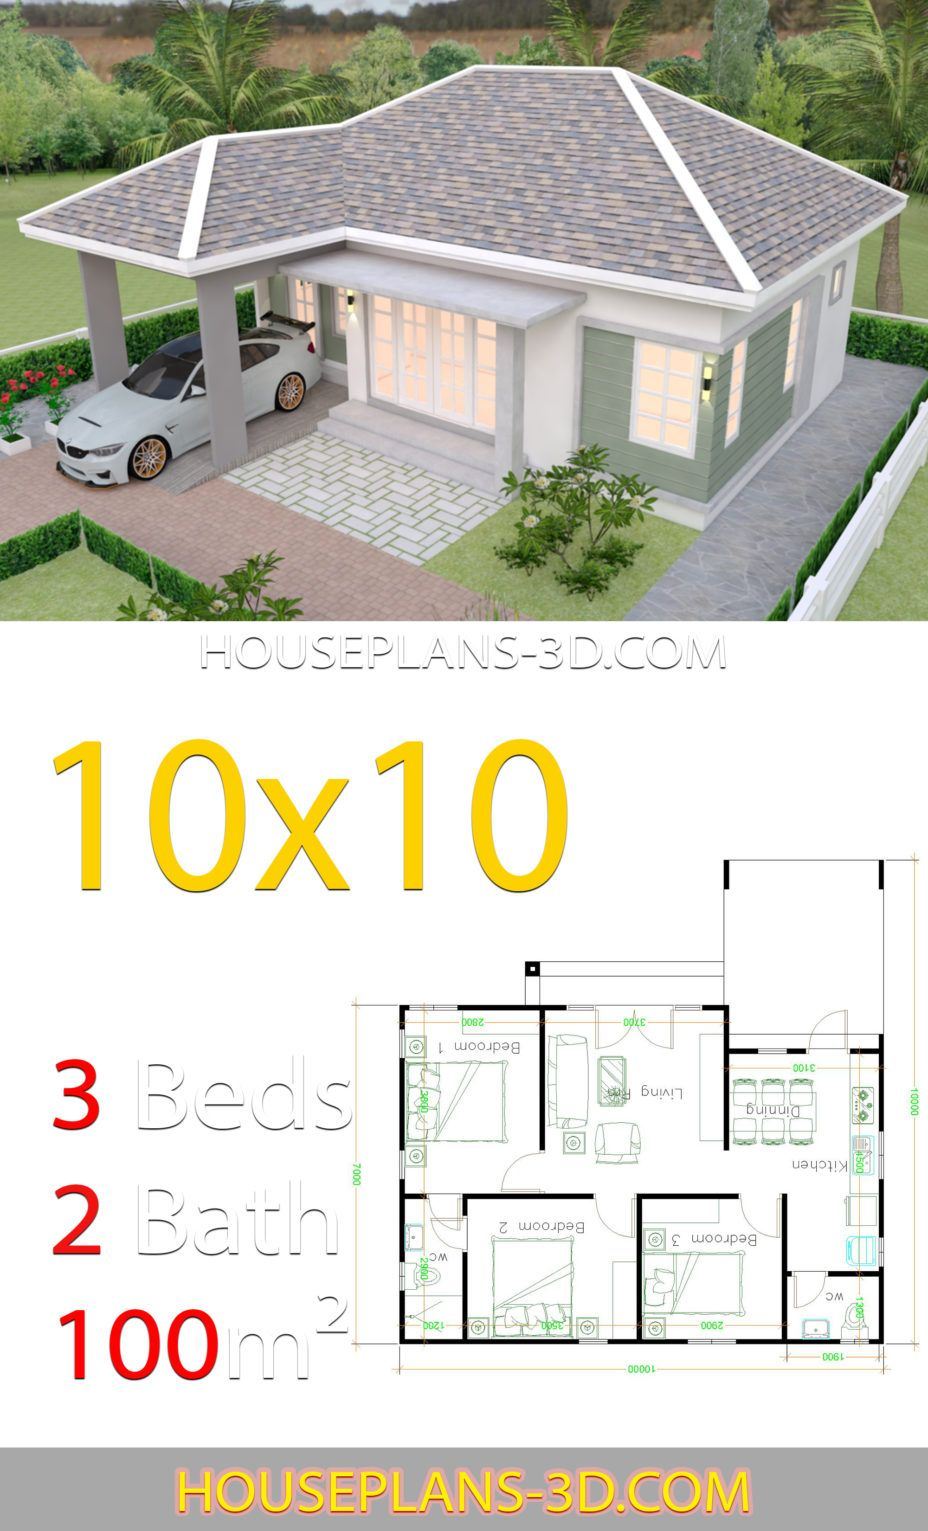 Interior House Design Plans 10x10 With 3 Bedrooms Full Plans House Plans 3d In 2020 House Plans Affordable House Plans Simple House Design